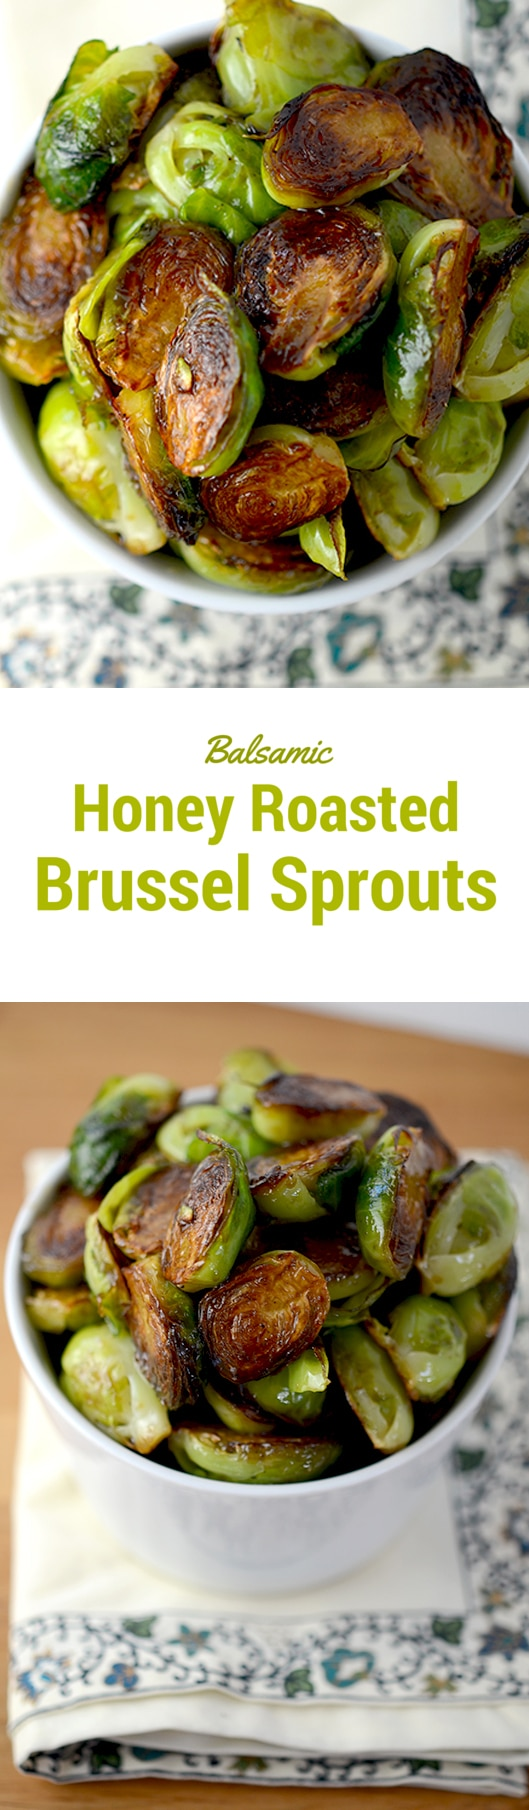 Balsamic honey roasted brussels sprouts have no right tasting just ...